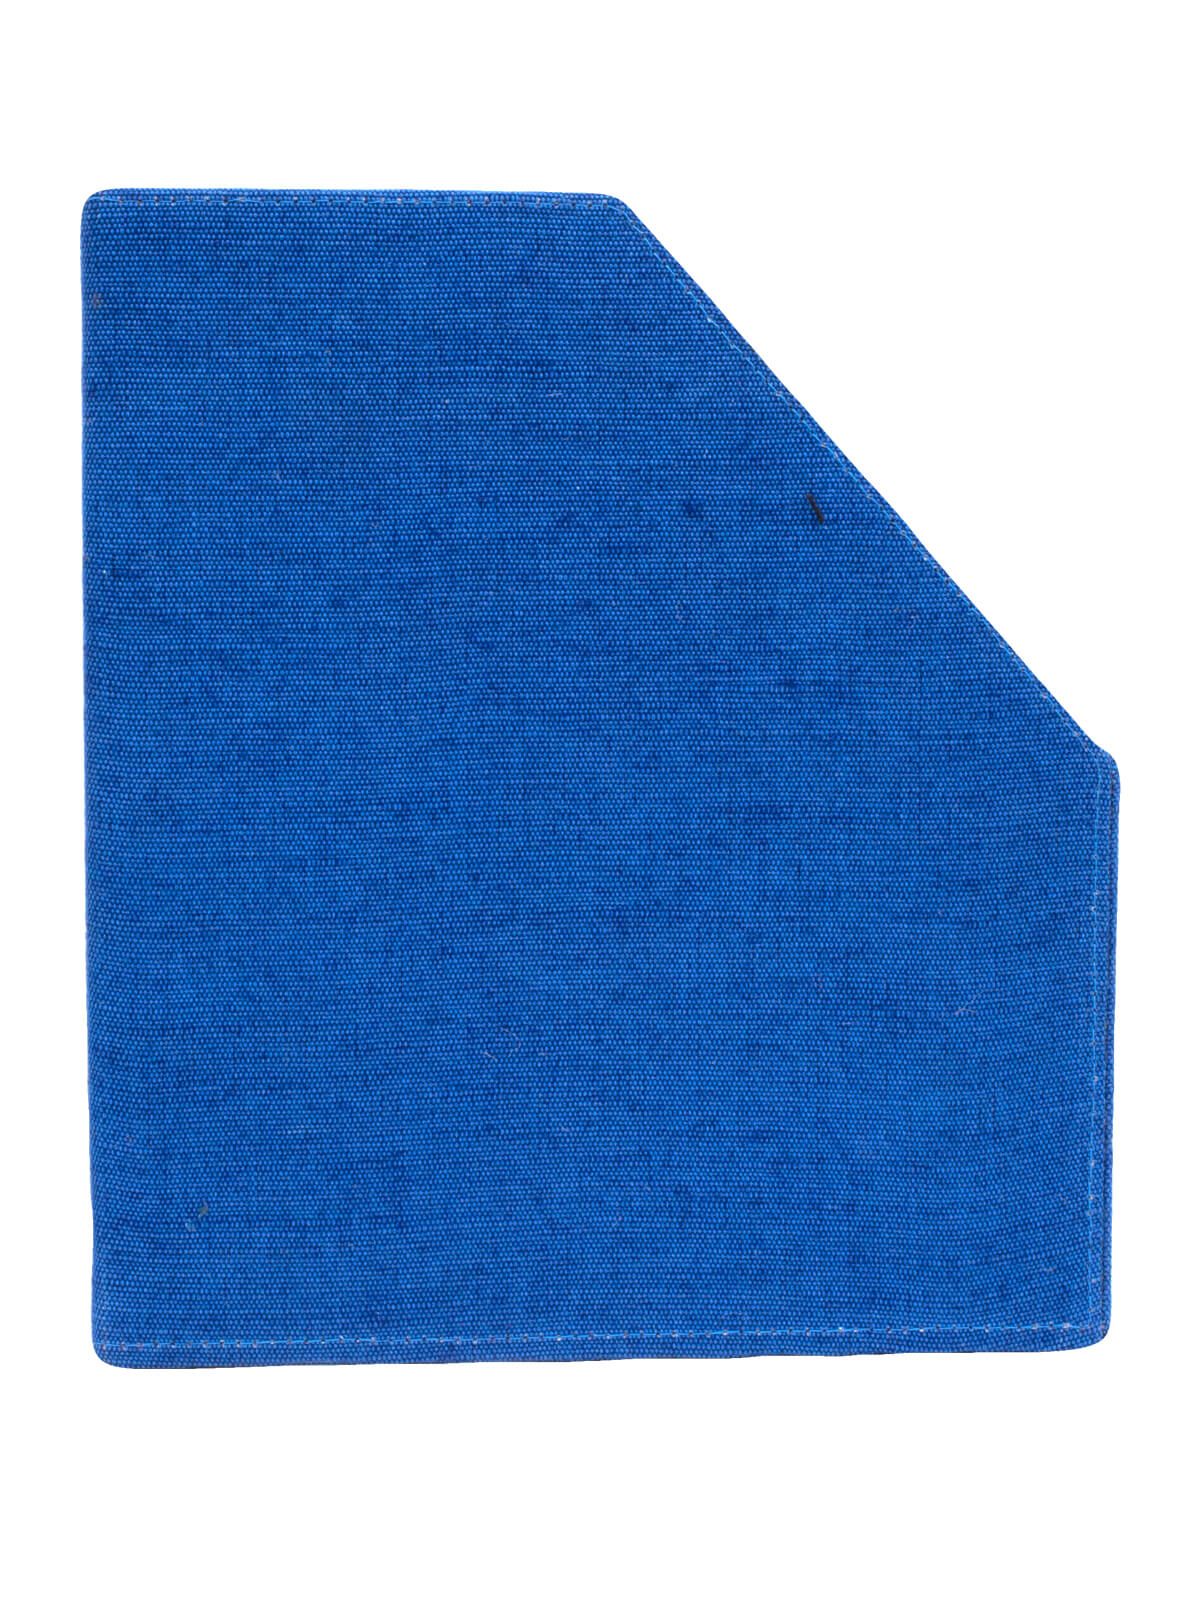 Blue Jute Desk File